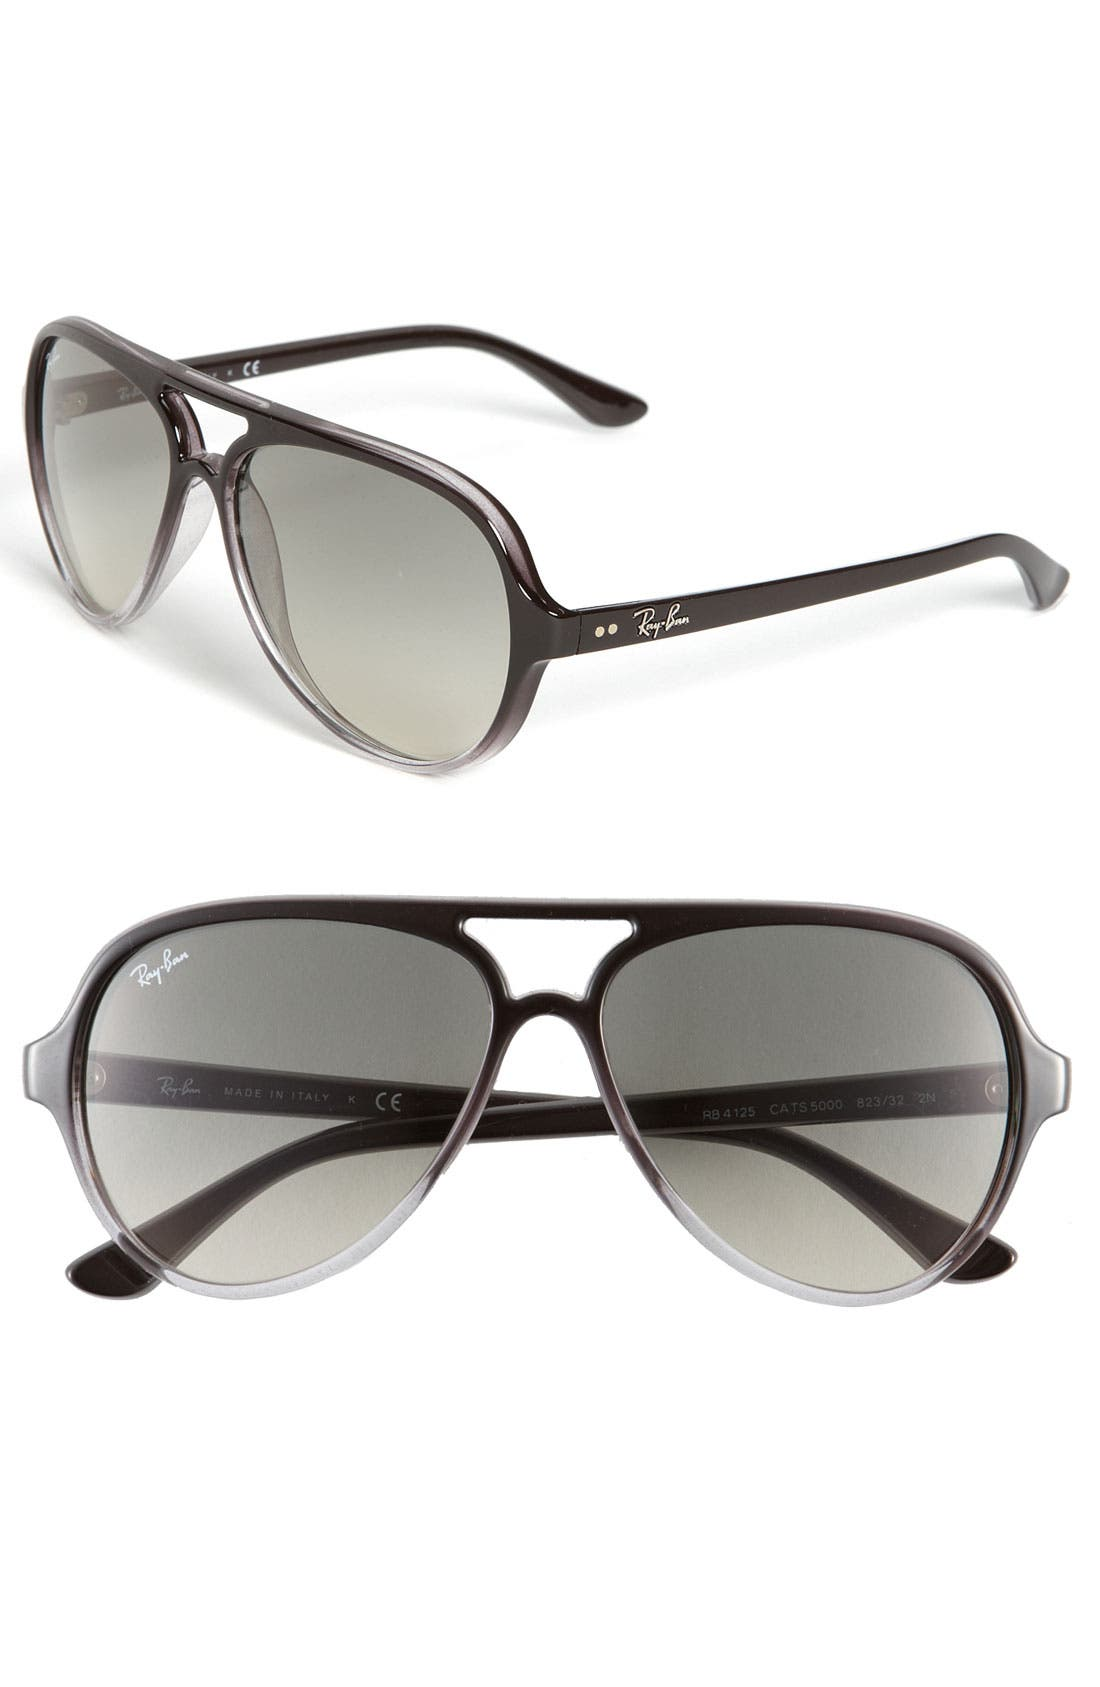 Alternate Image 1 Selected - Ray-Ban 59mm Resin Aviator Sunglasses